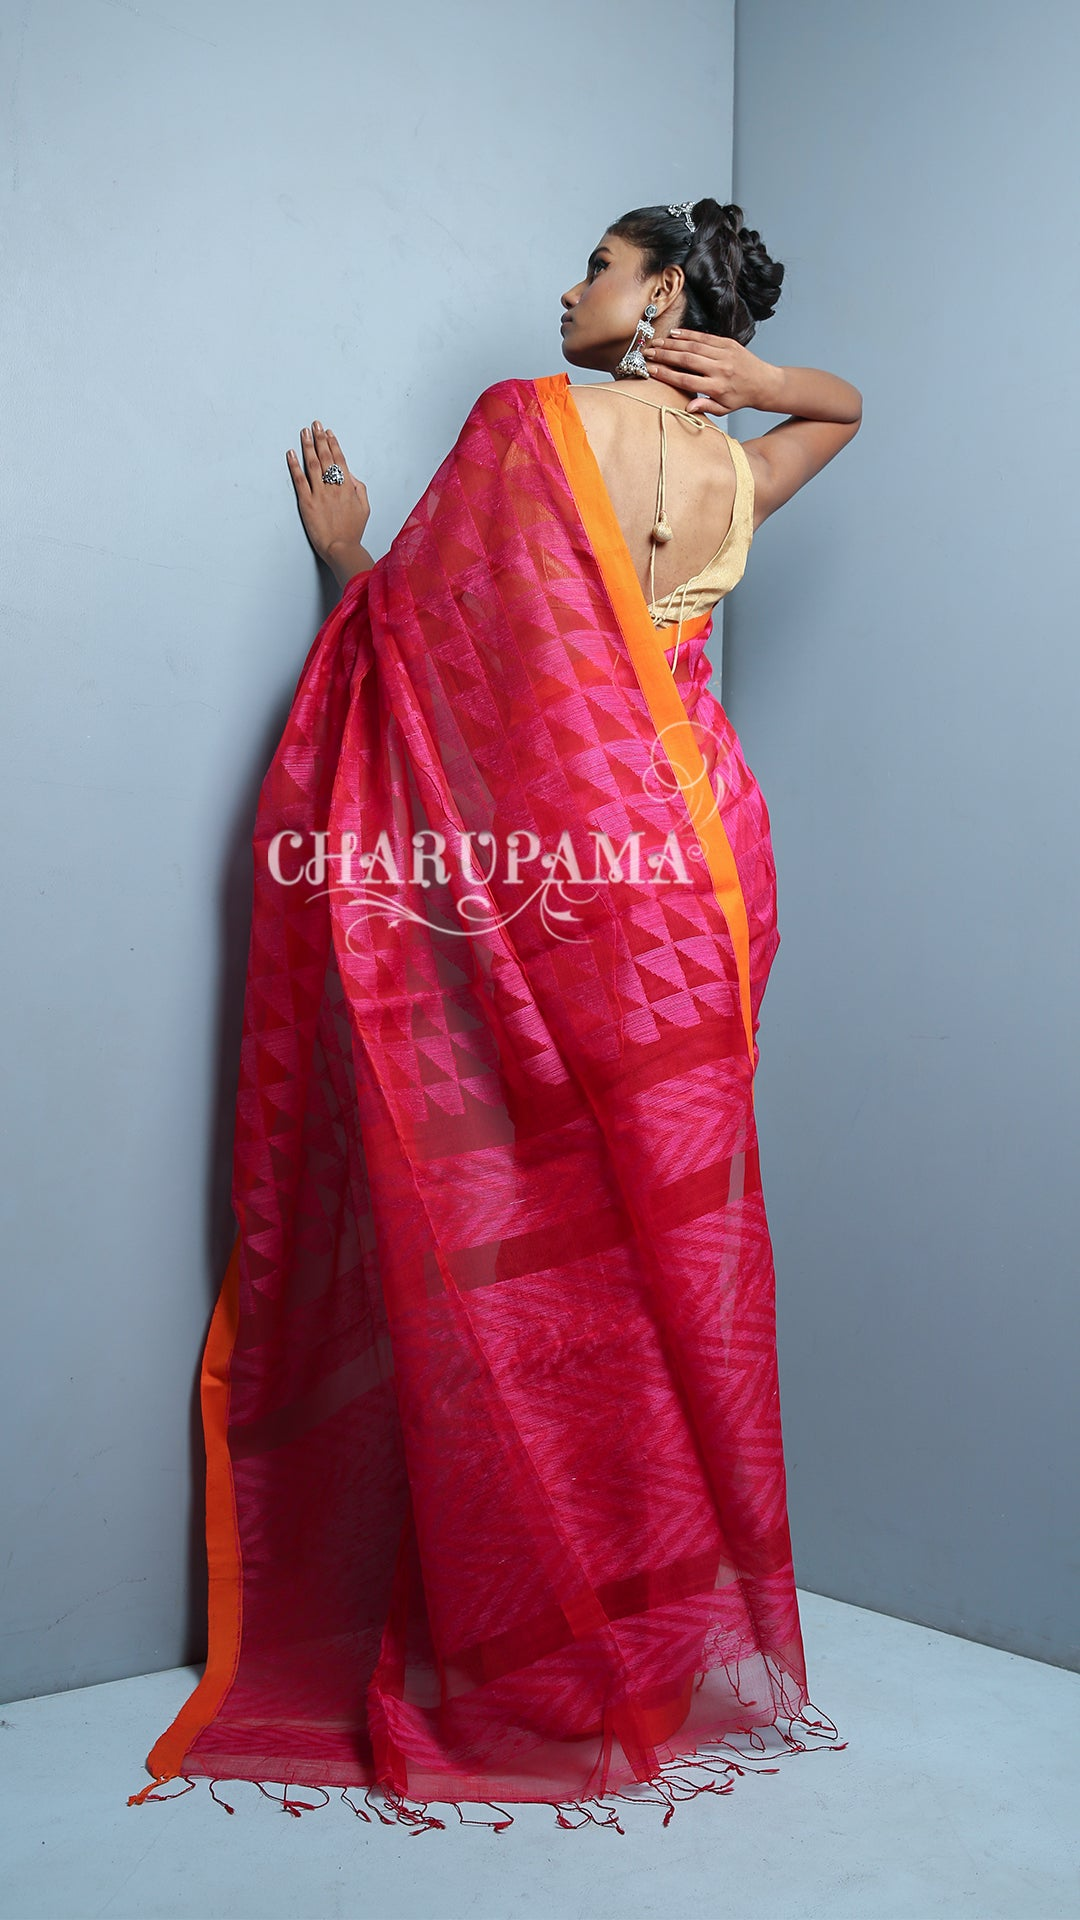 Matka Is The Symbol Of Purity, Richness And Elegance That Every Indian Woman Wishes To Have In Their Wardrobe.  Vibrant Pink Coloured Abstract Motif Weaving  Pure Matka Saree Is Simple Yet Elegant Looking.